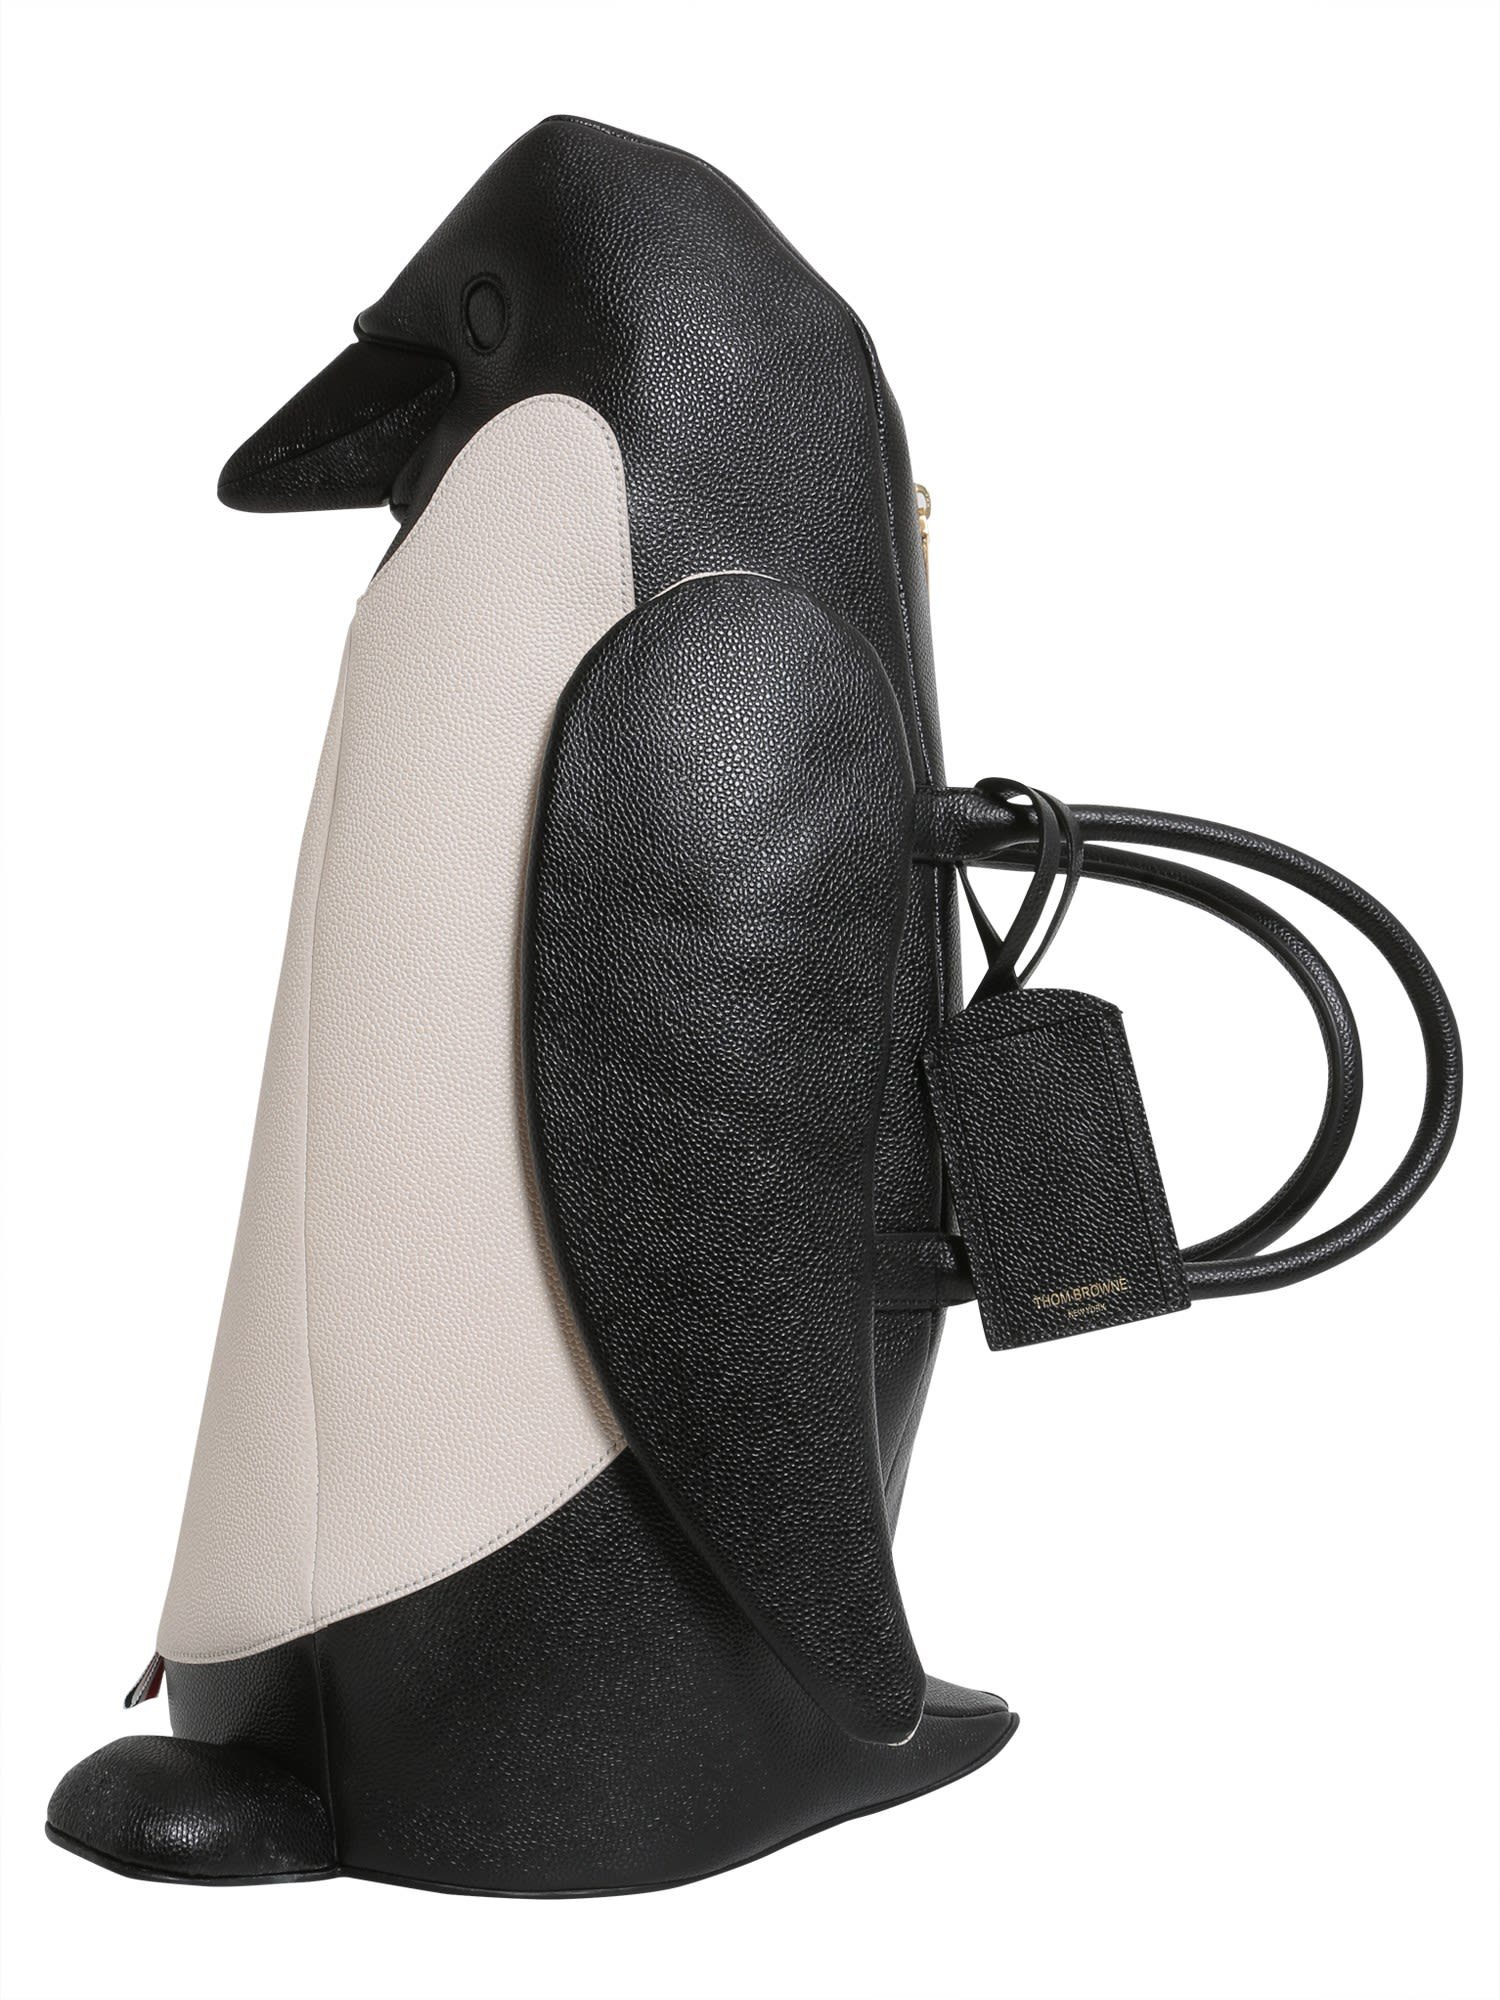 Penguin Shaped Leather Bag